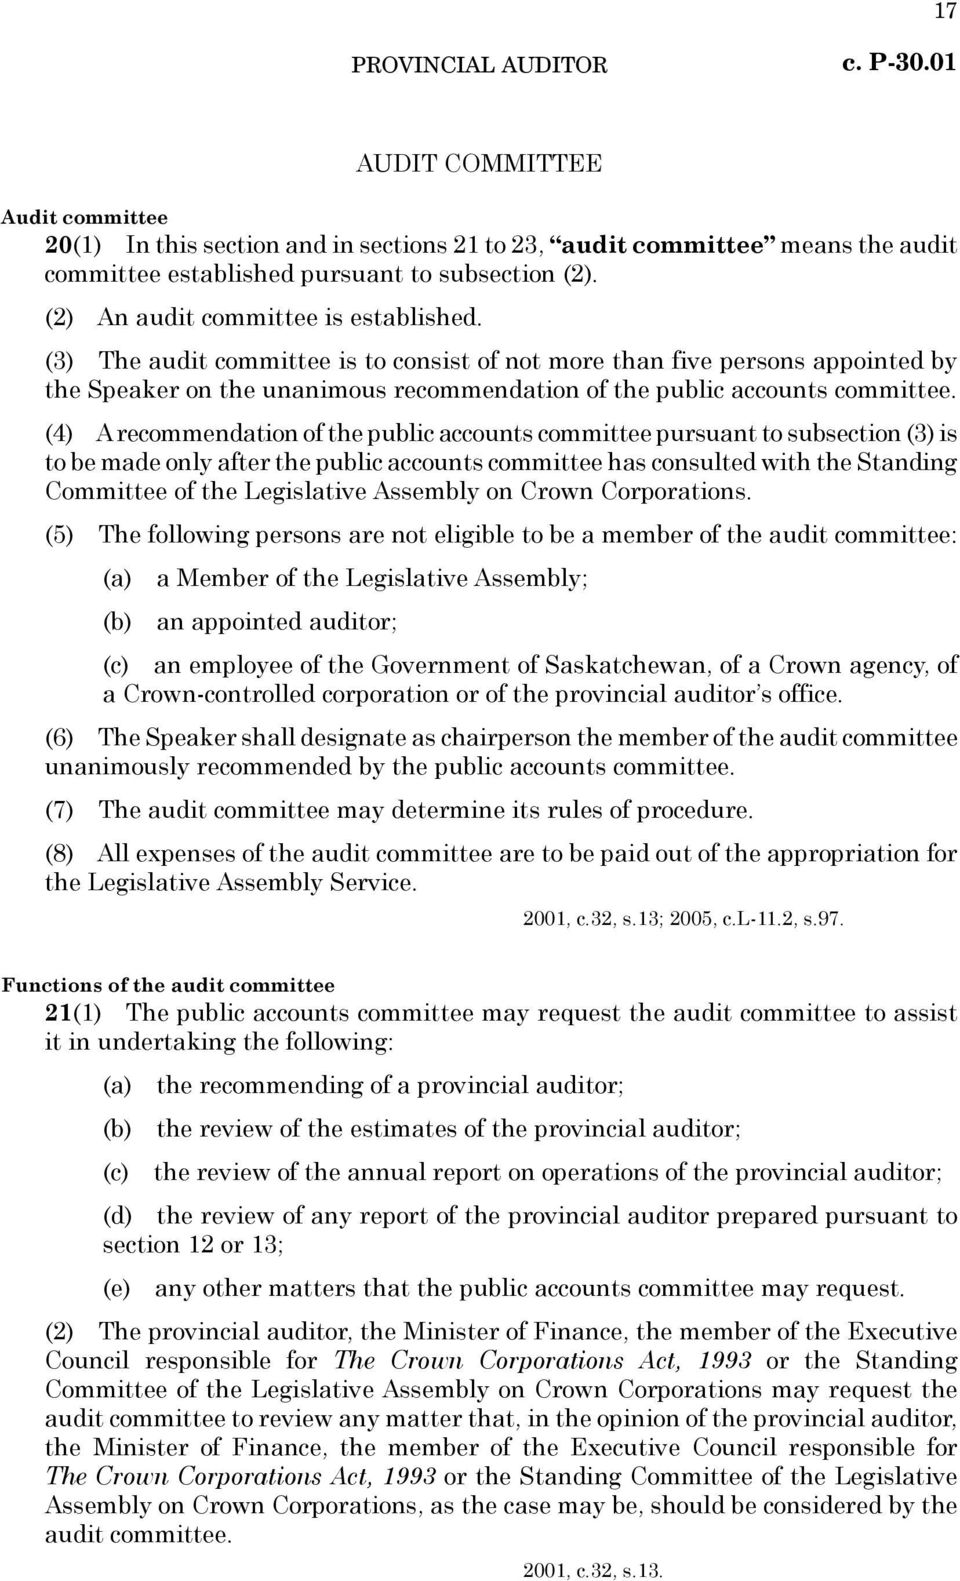 (4) A recommendation of the public accounts committee pursuant to subsection (3) is to be made only after the public accounts committee has consulted with the Standing Committee of the Legislative